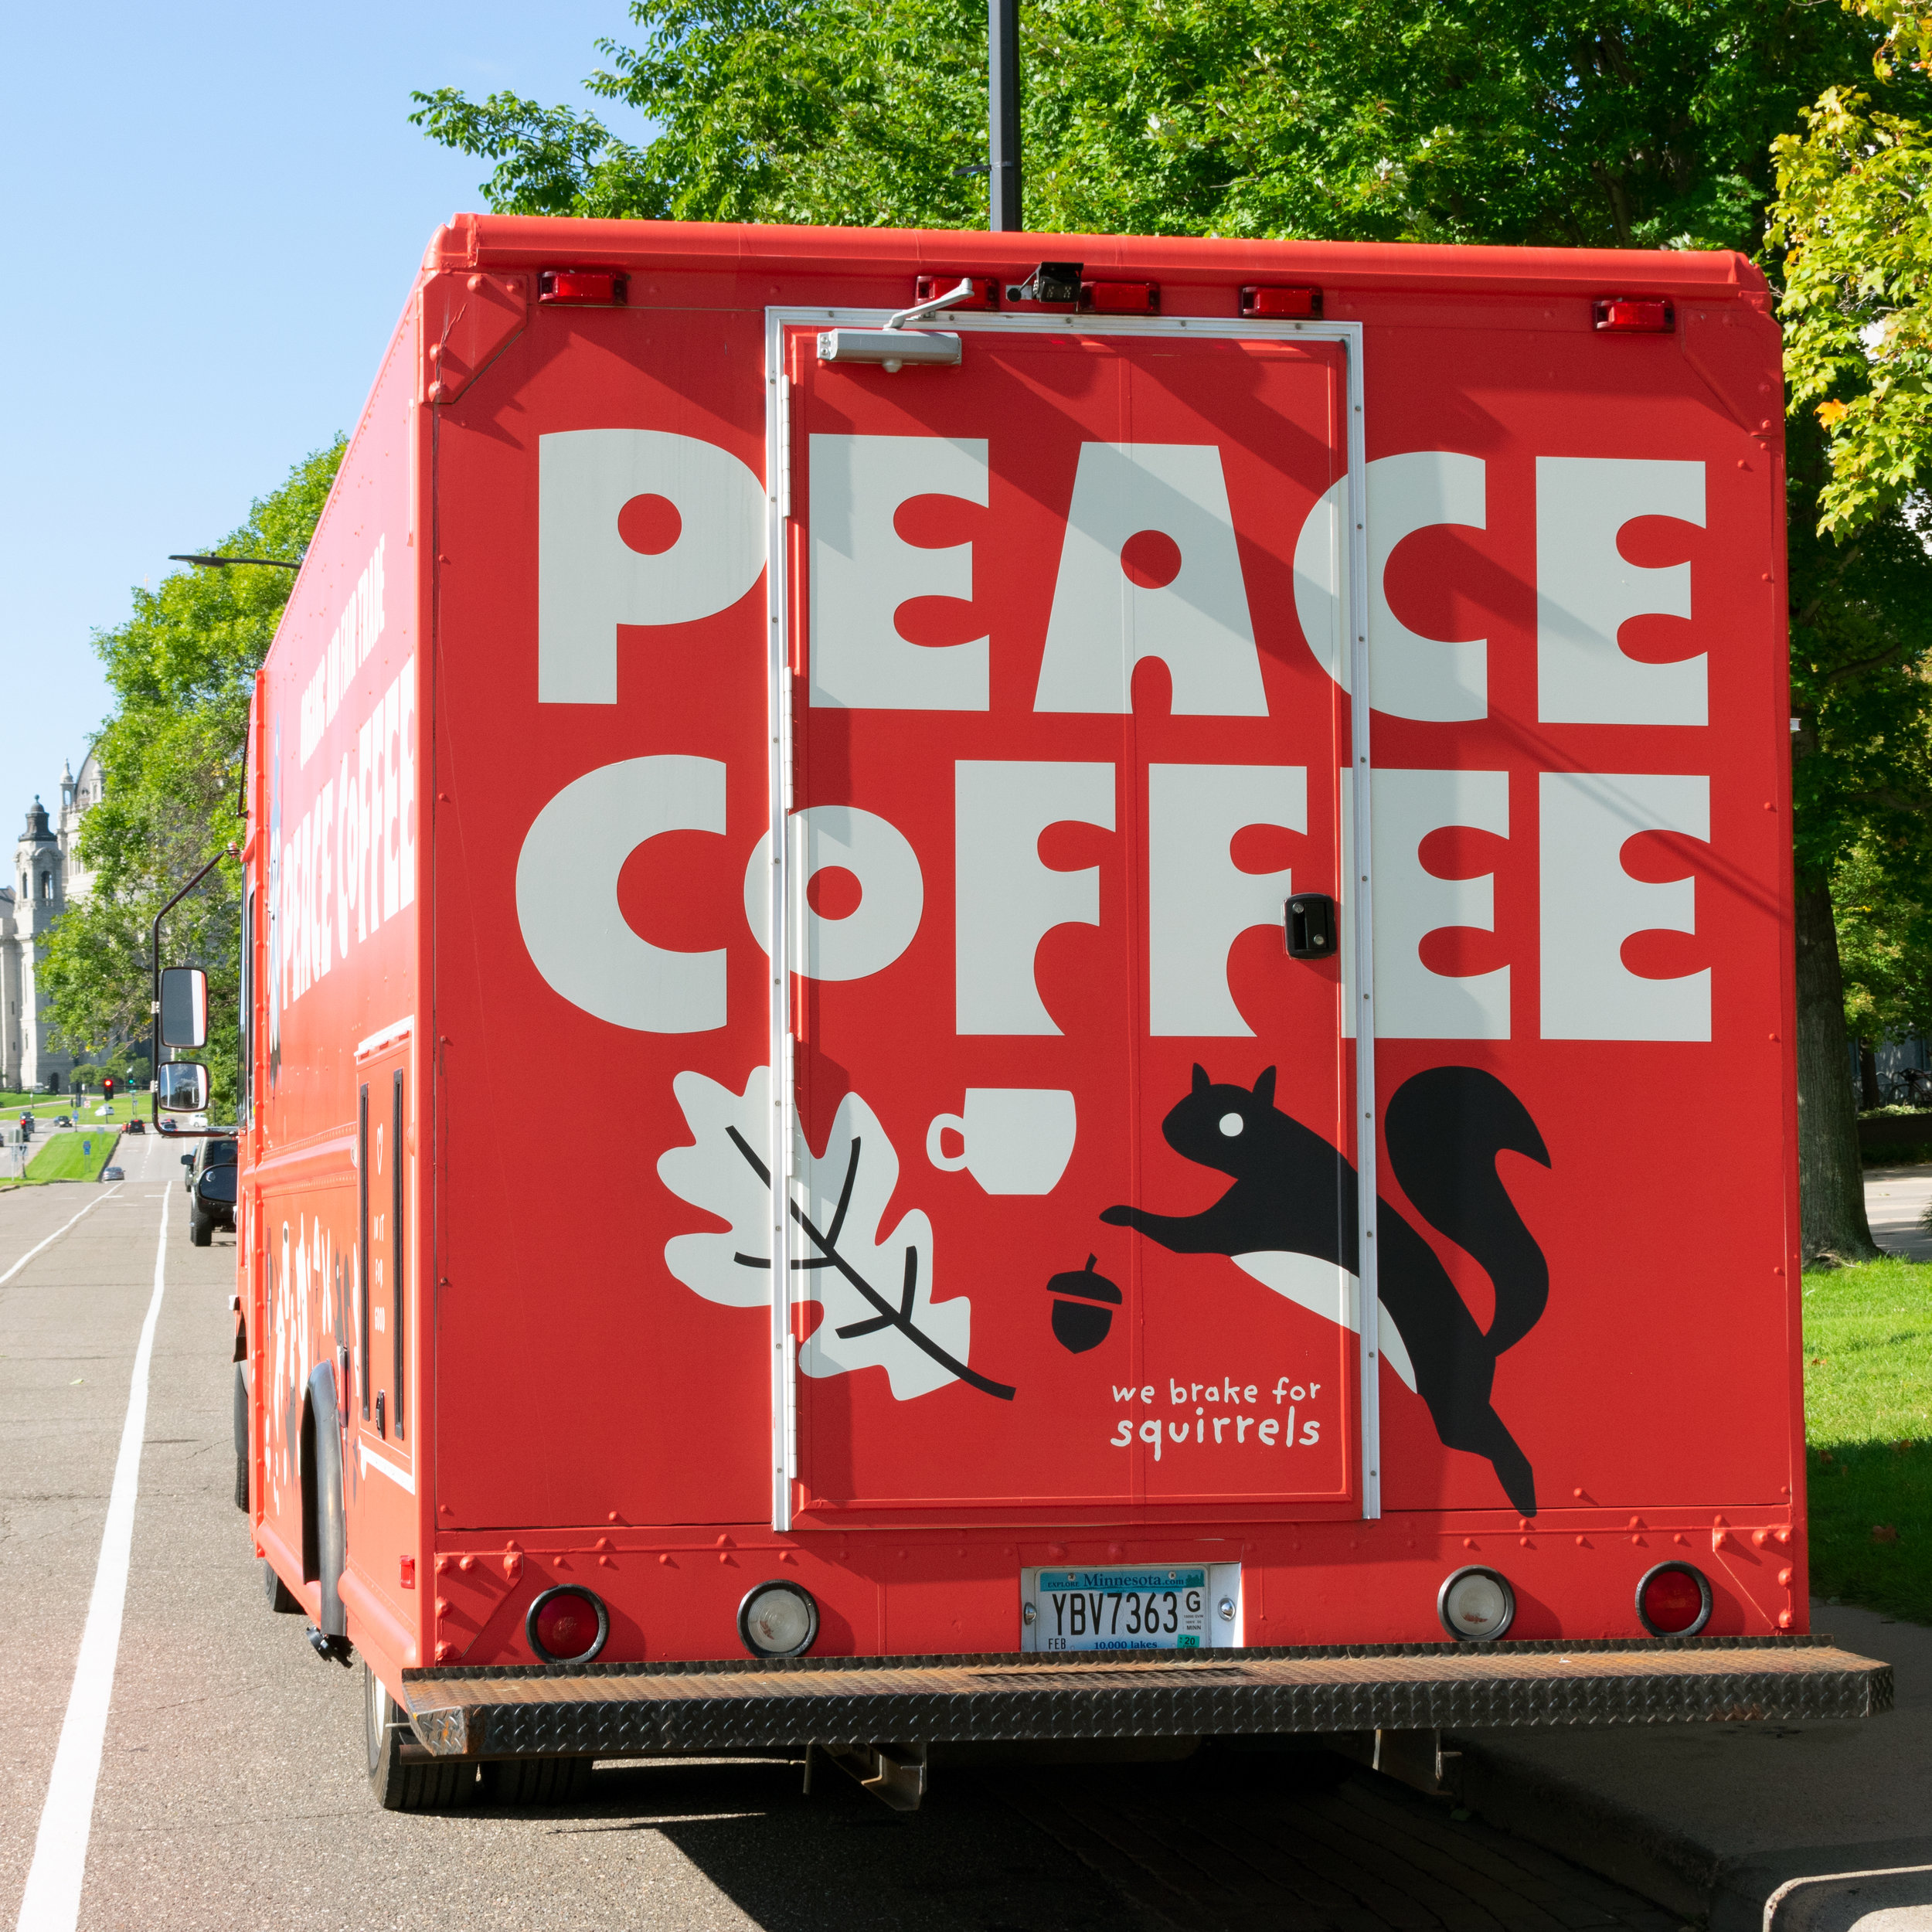 Peace Coffee mobile cafe truck designed by Abby Haddican